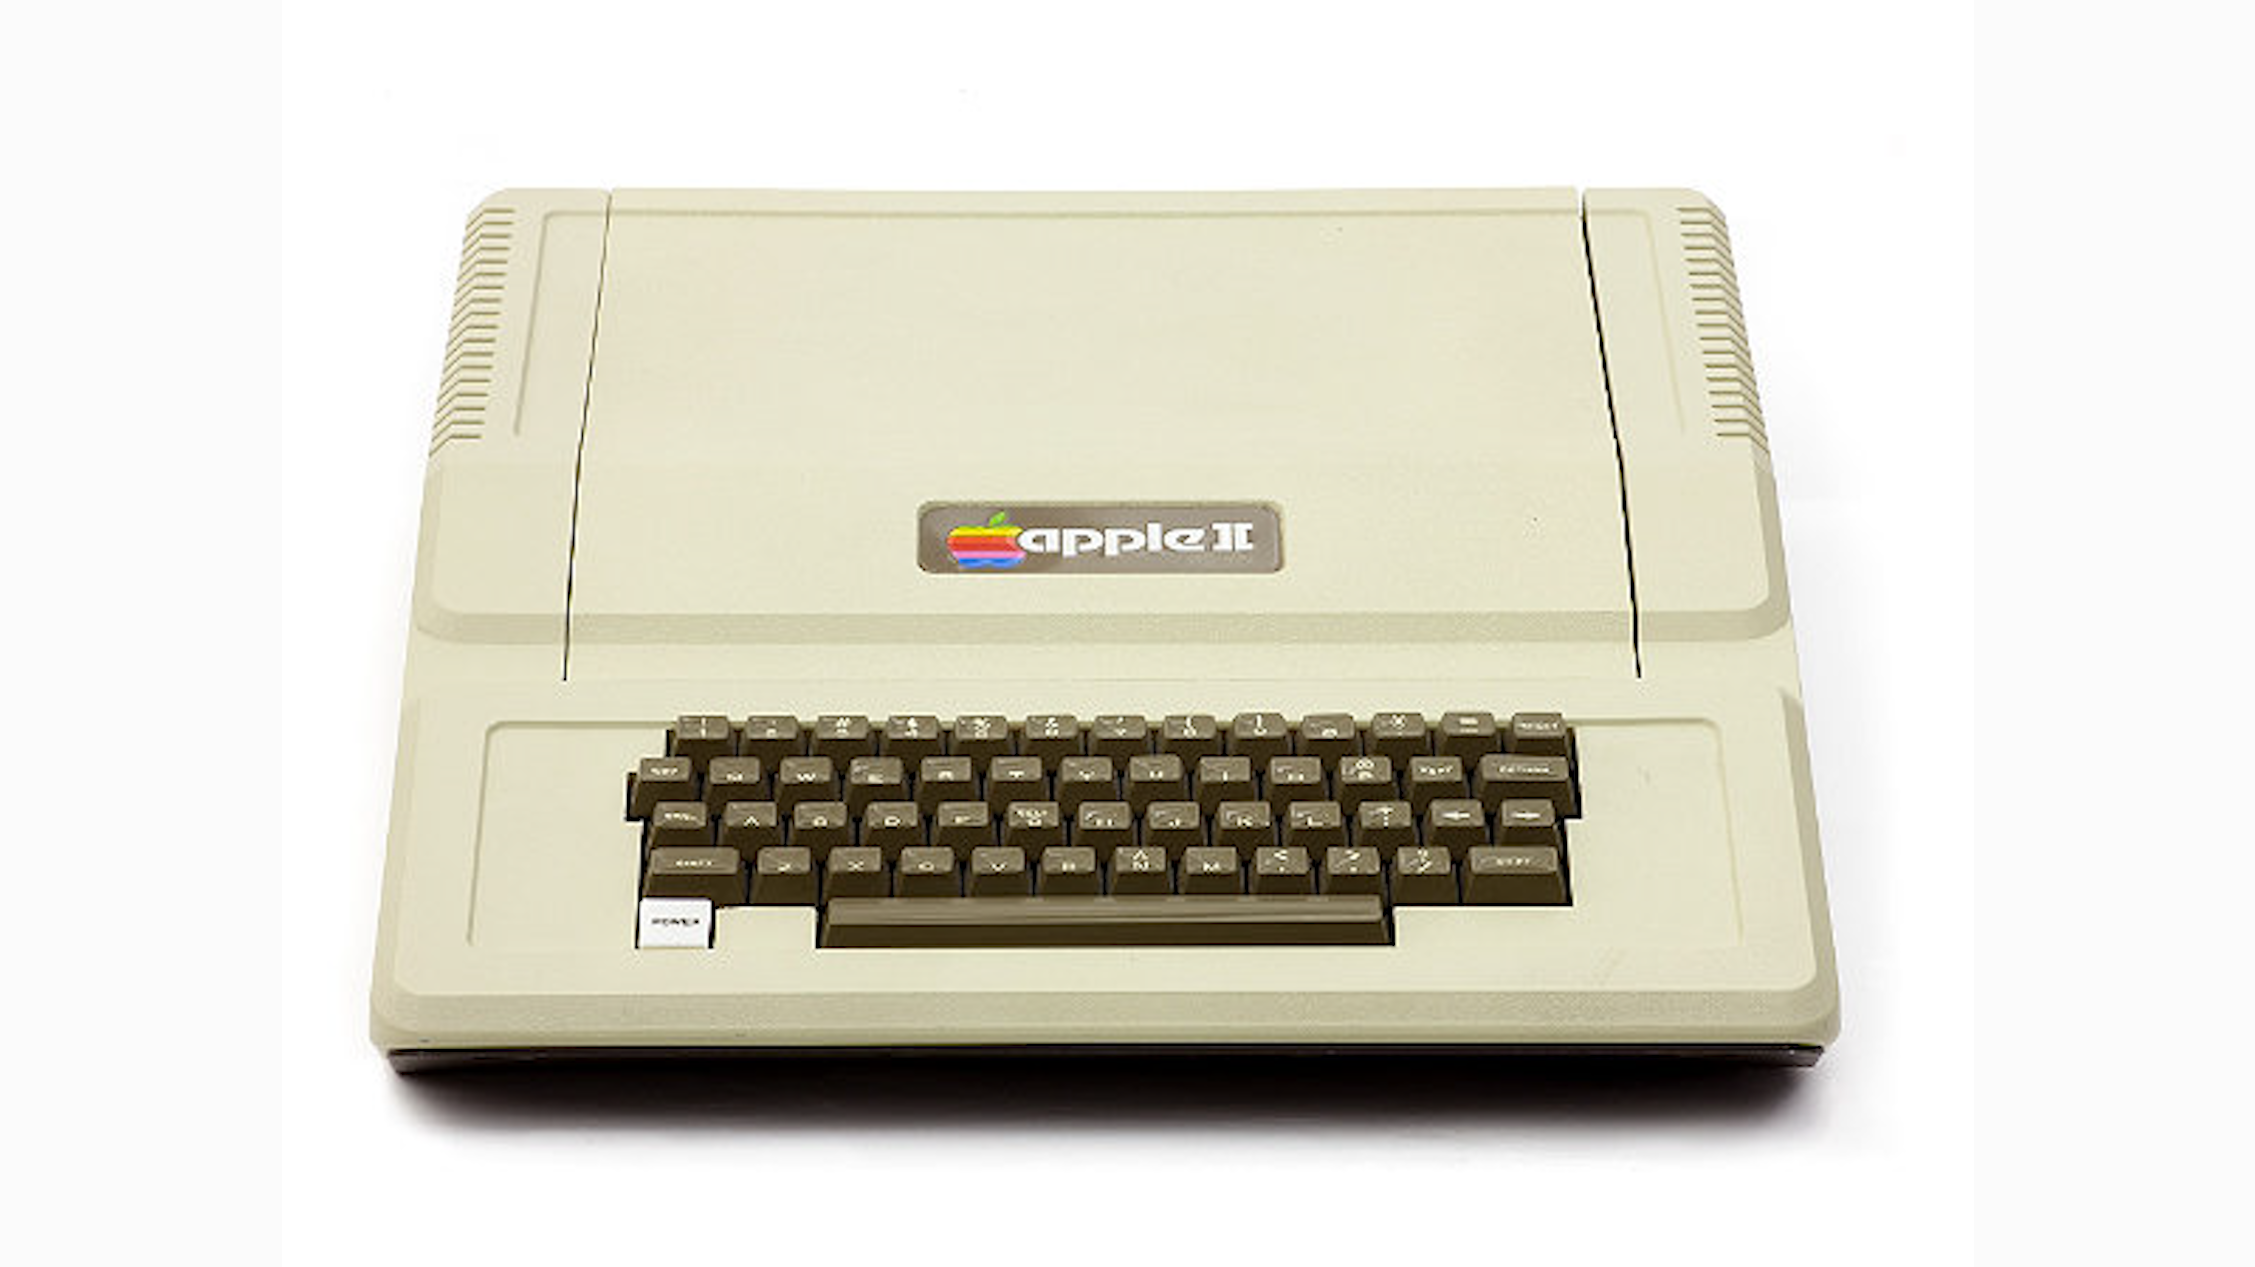 Video: Most iconic Apple products ever made